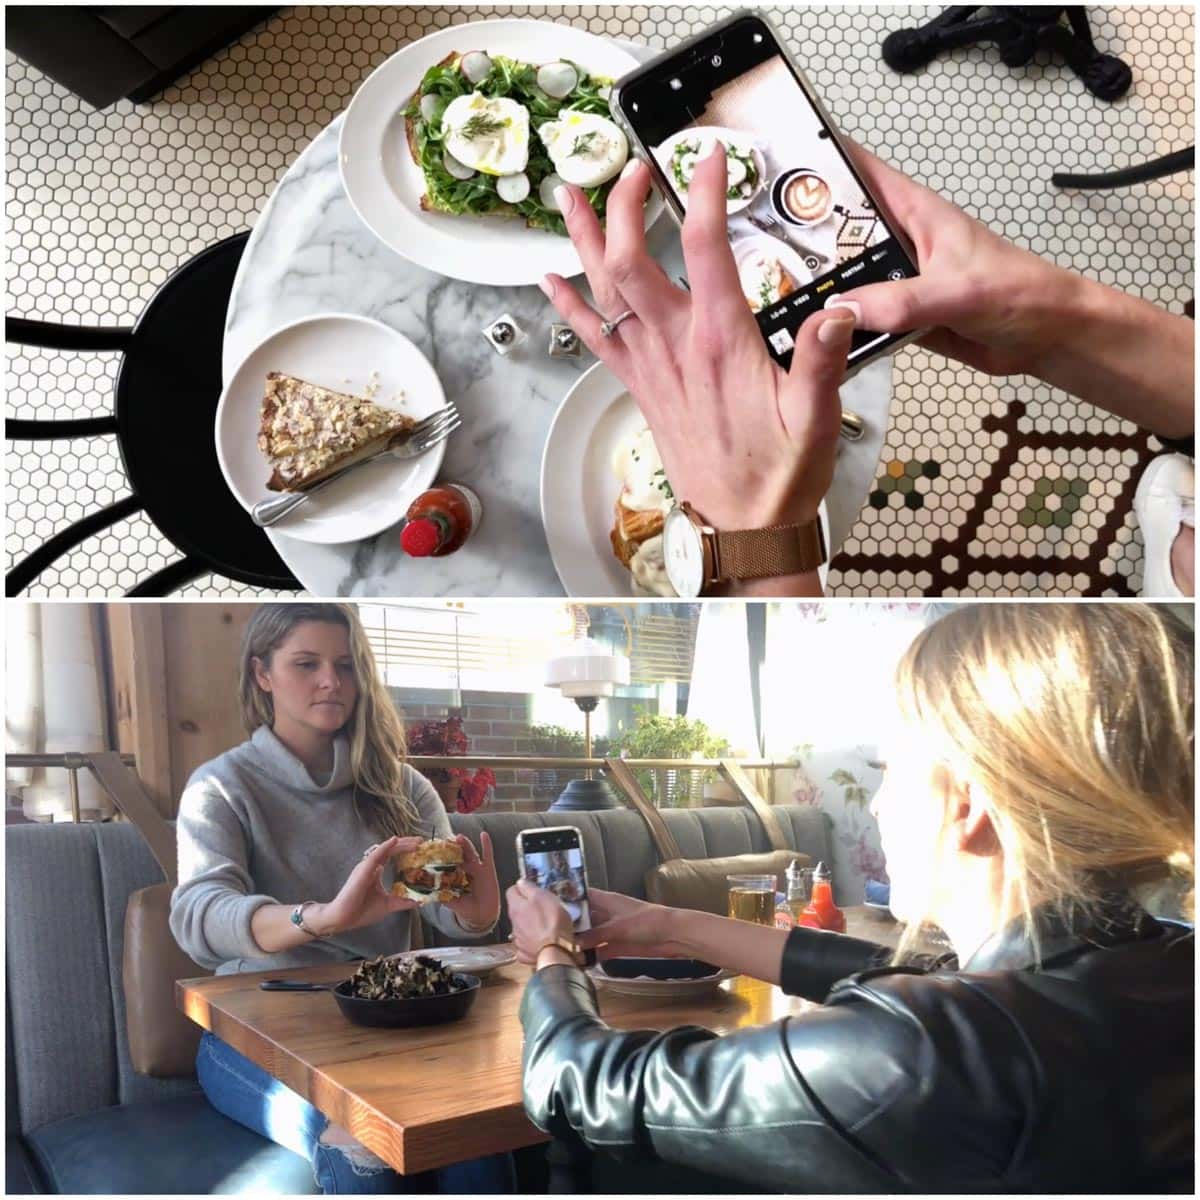 A collage of two images showing shooting food photography in restaurants.